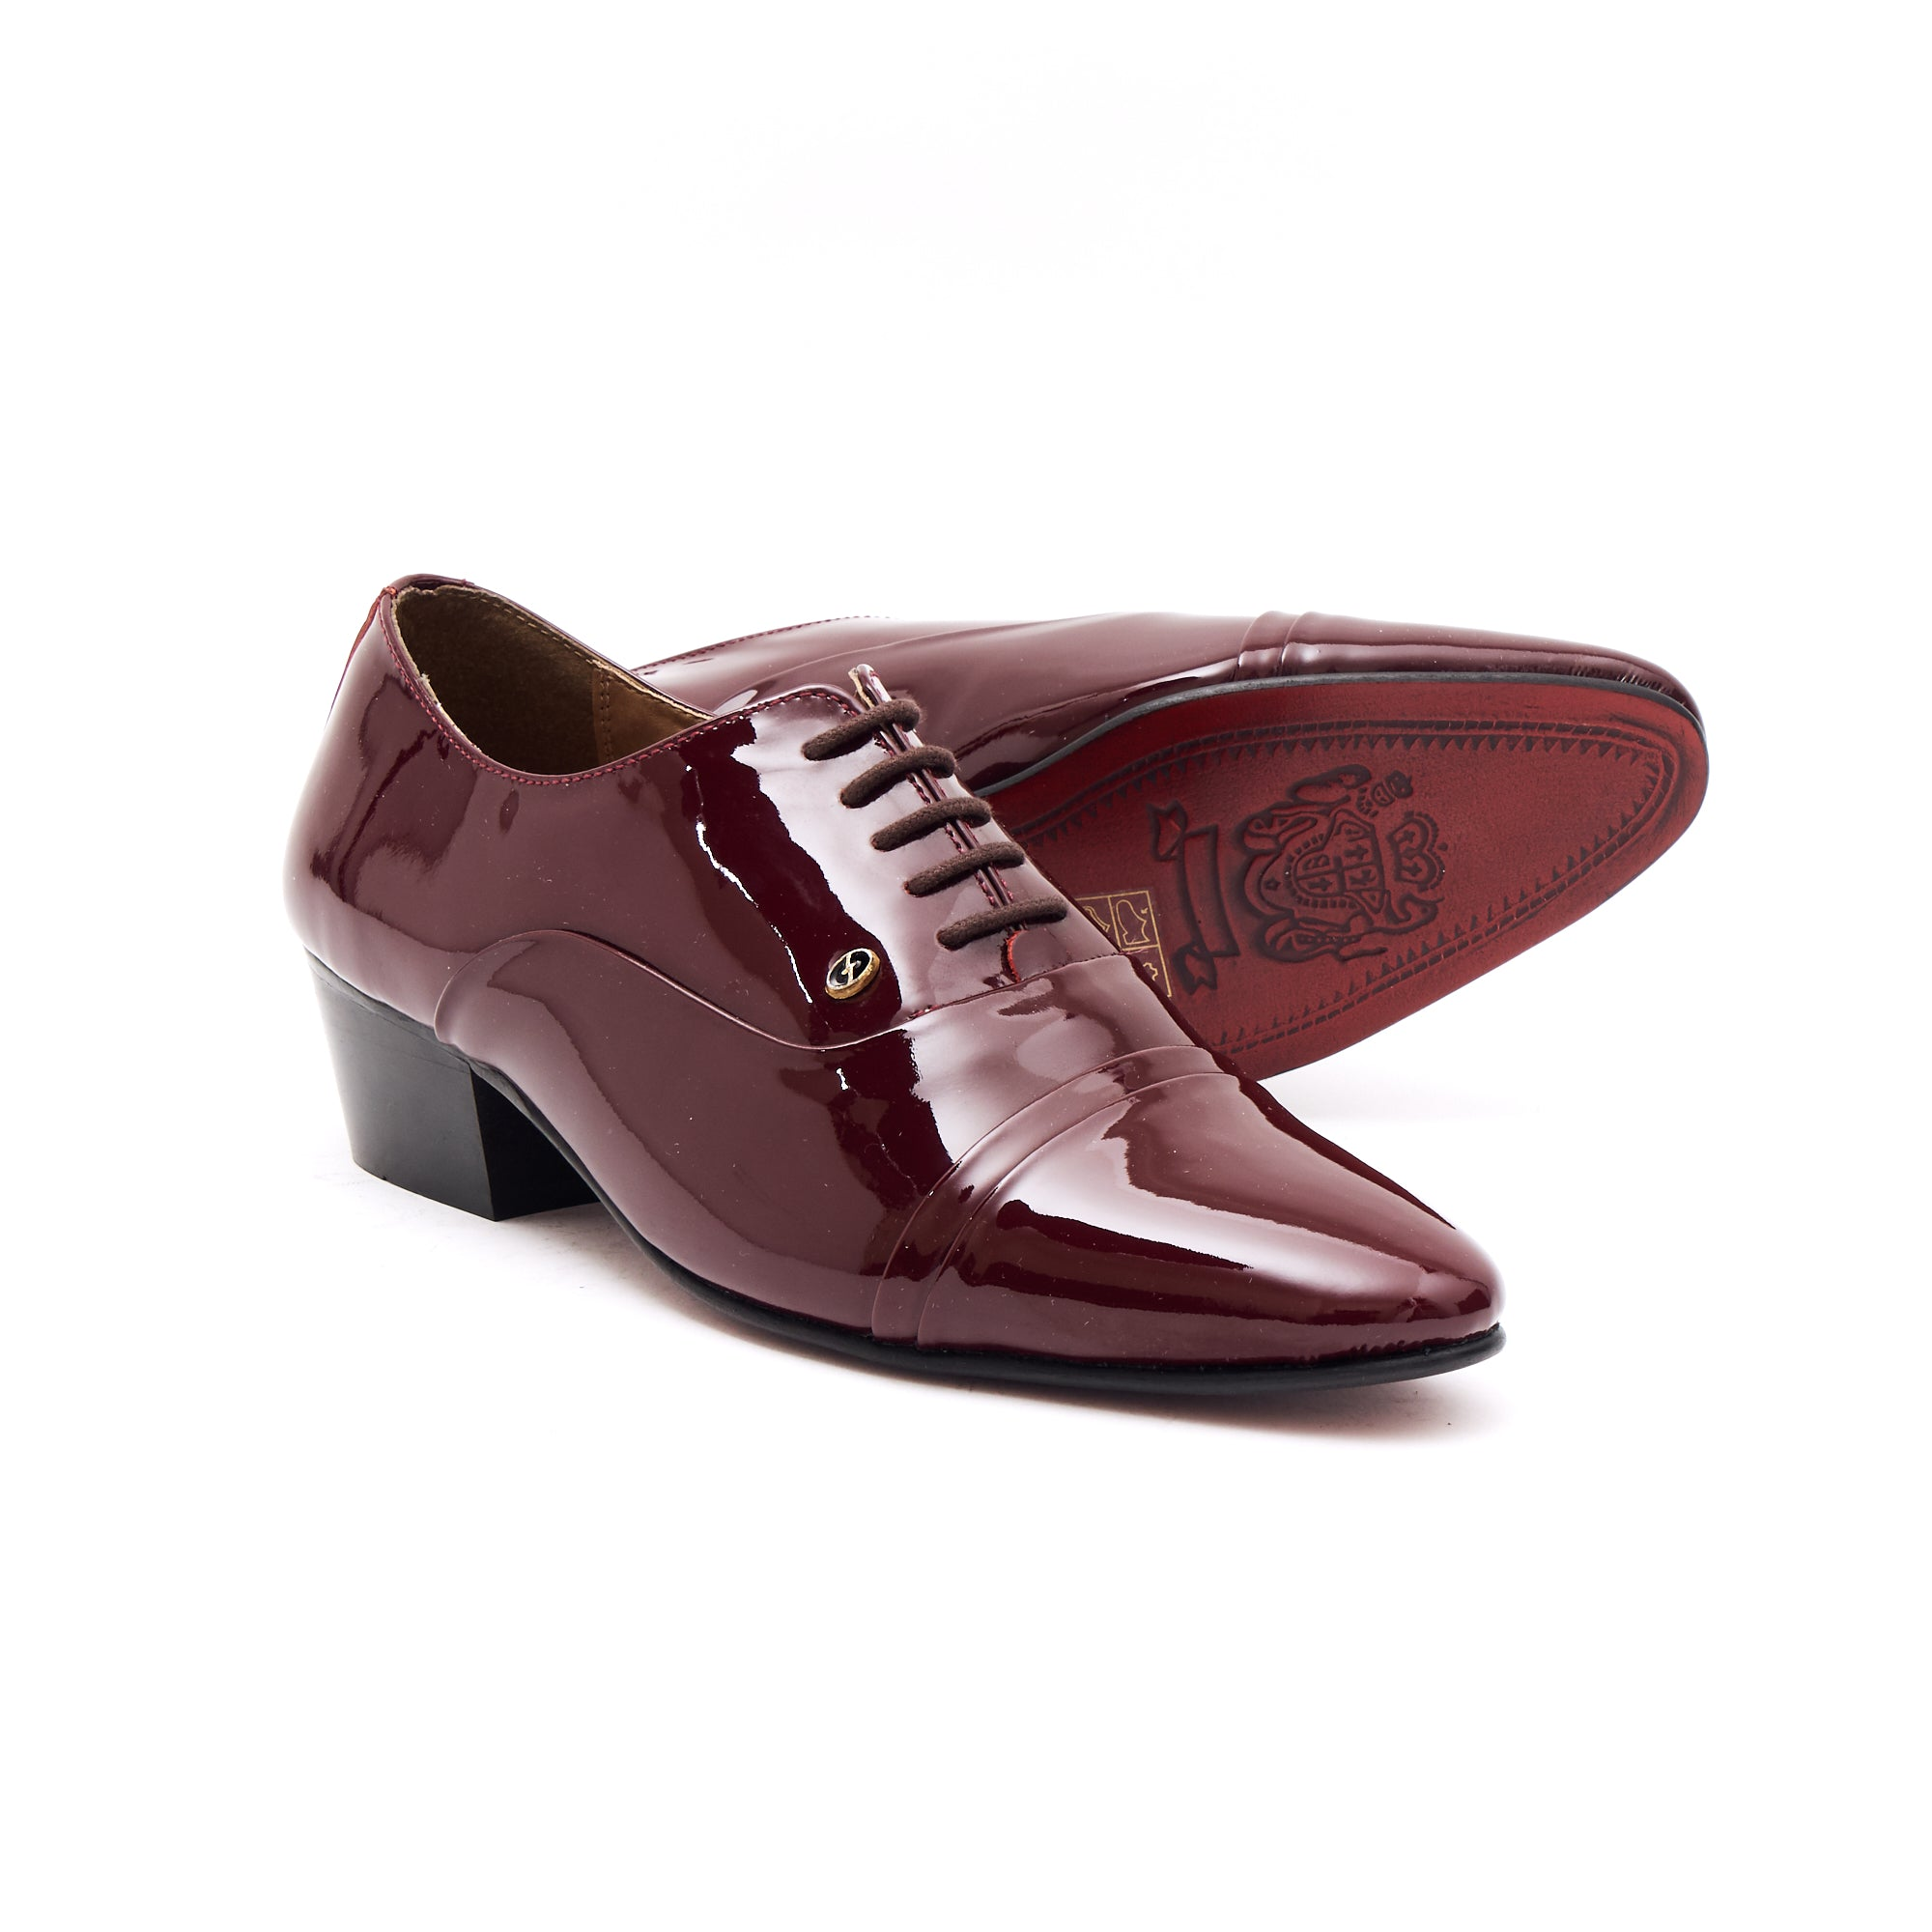 Mens Leather Cuban Heel Patent Shoes - 26286 Burgundy